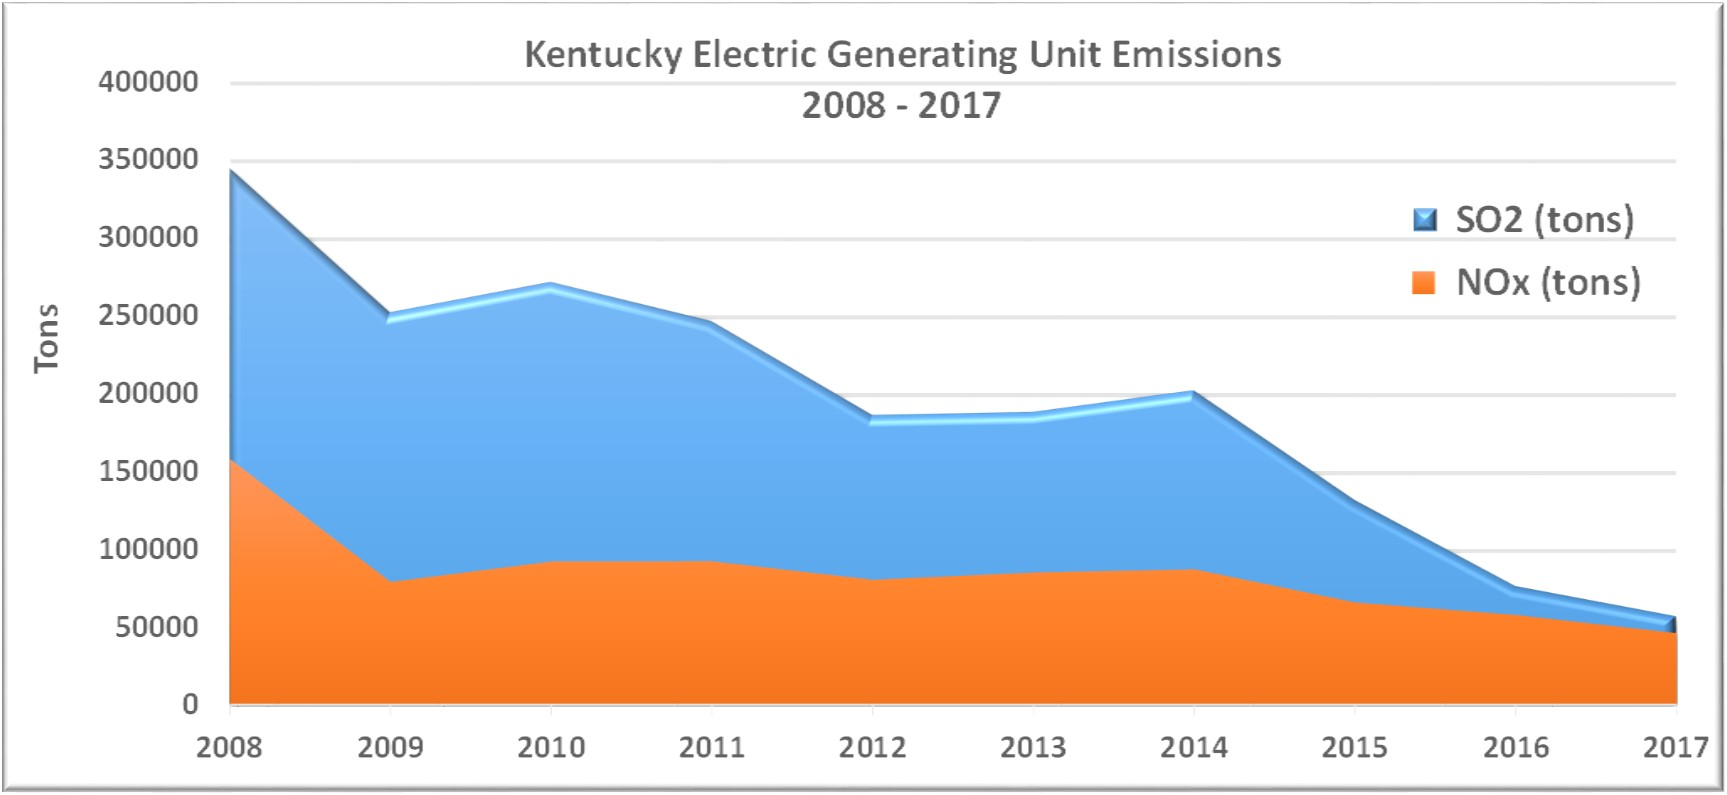 This graph shows the dramatic decline in nitrogen oxide and sulfur dioxide emissions from 2008 through 2017.